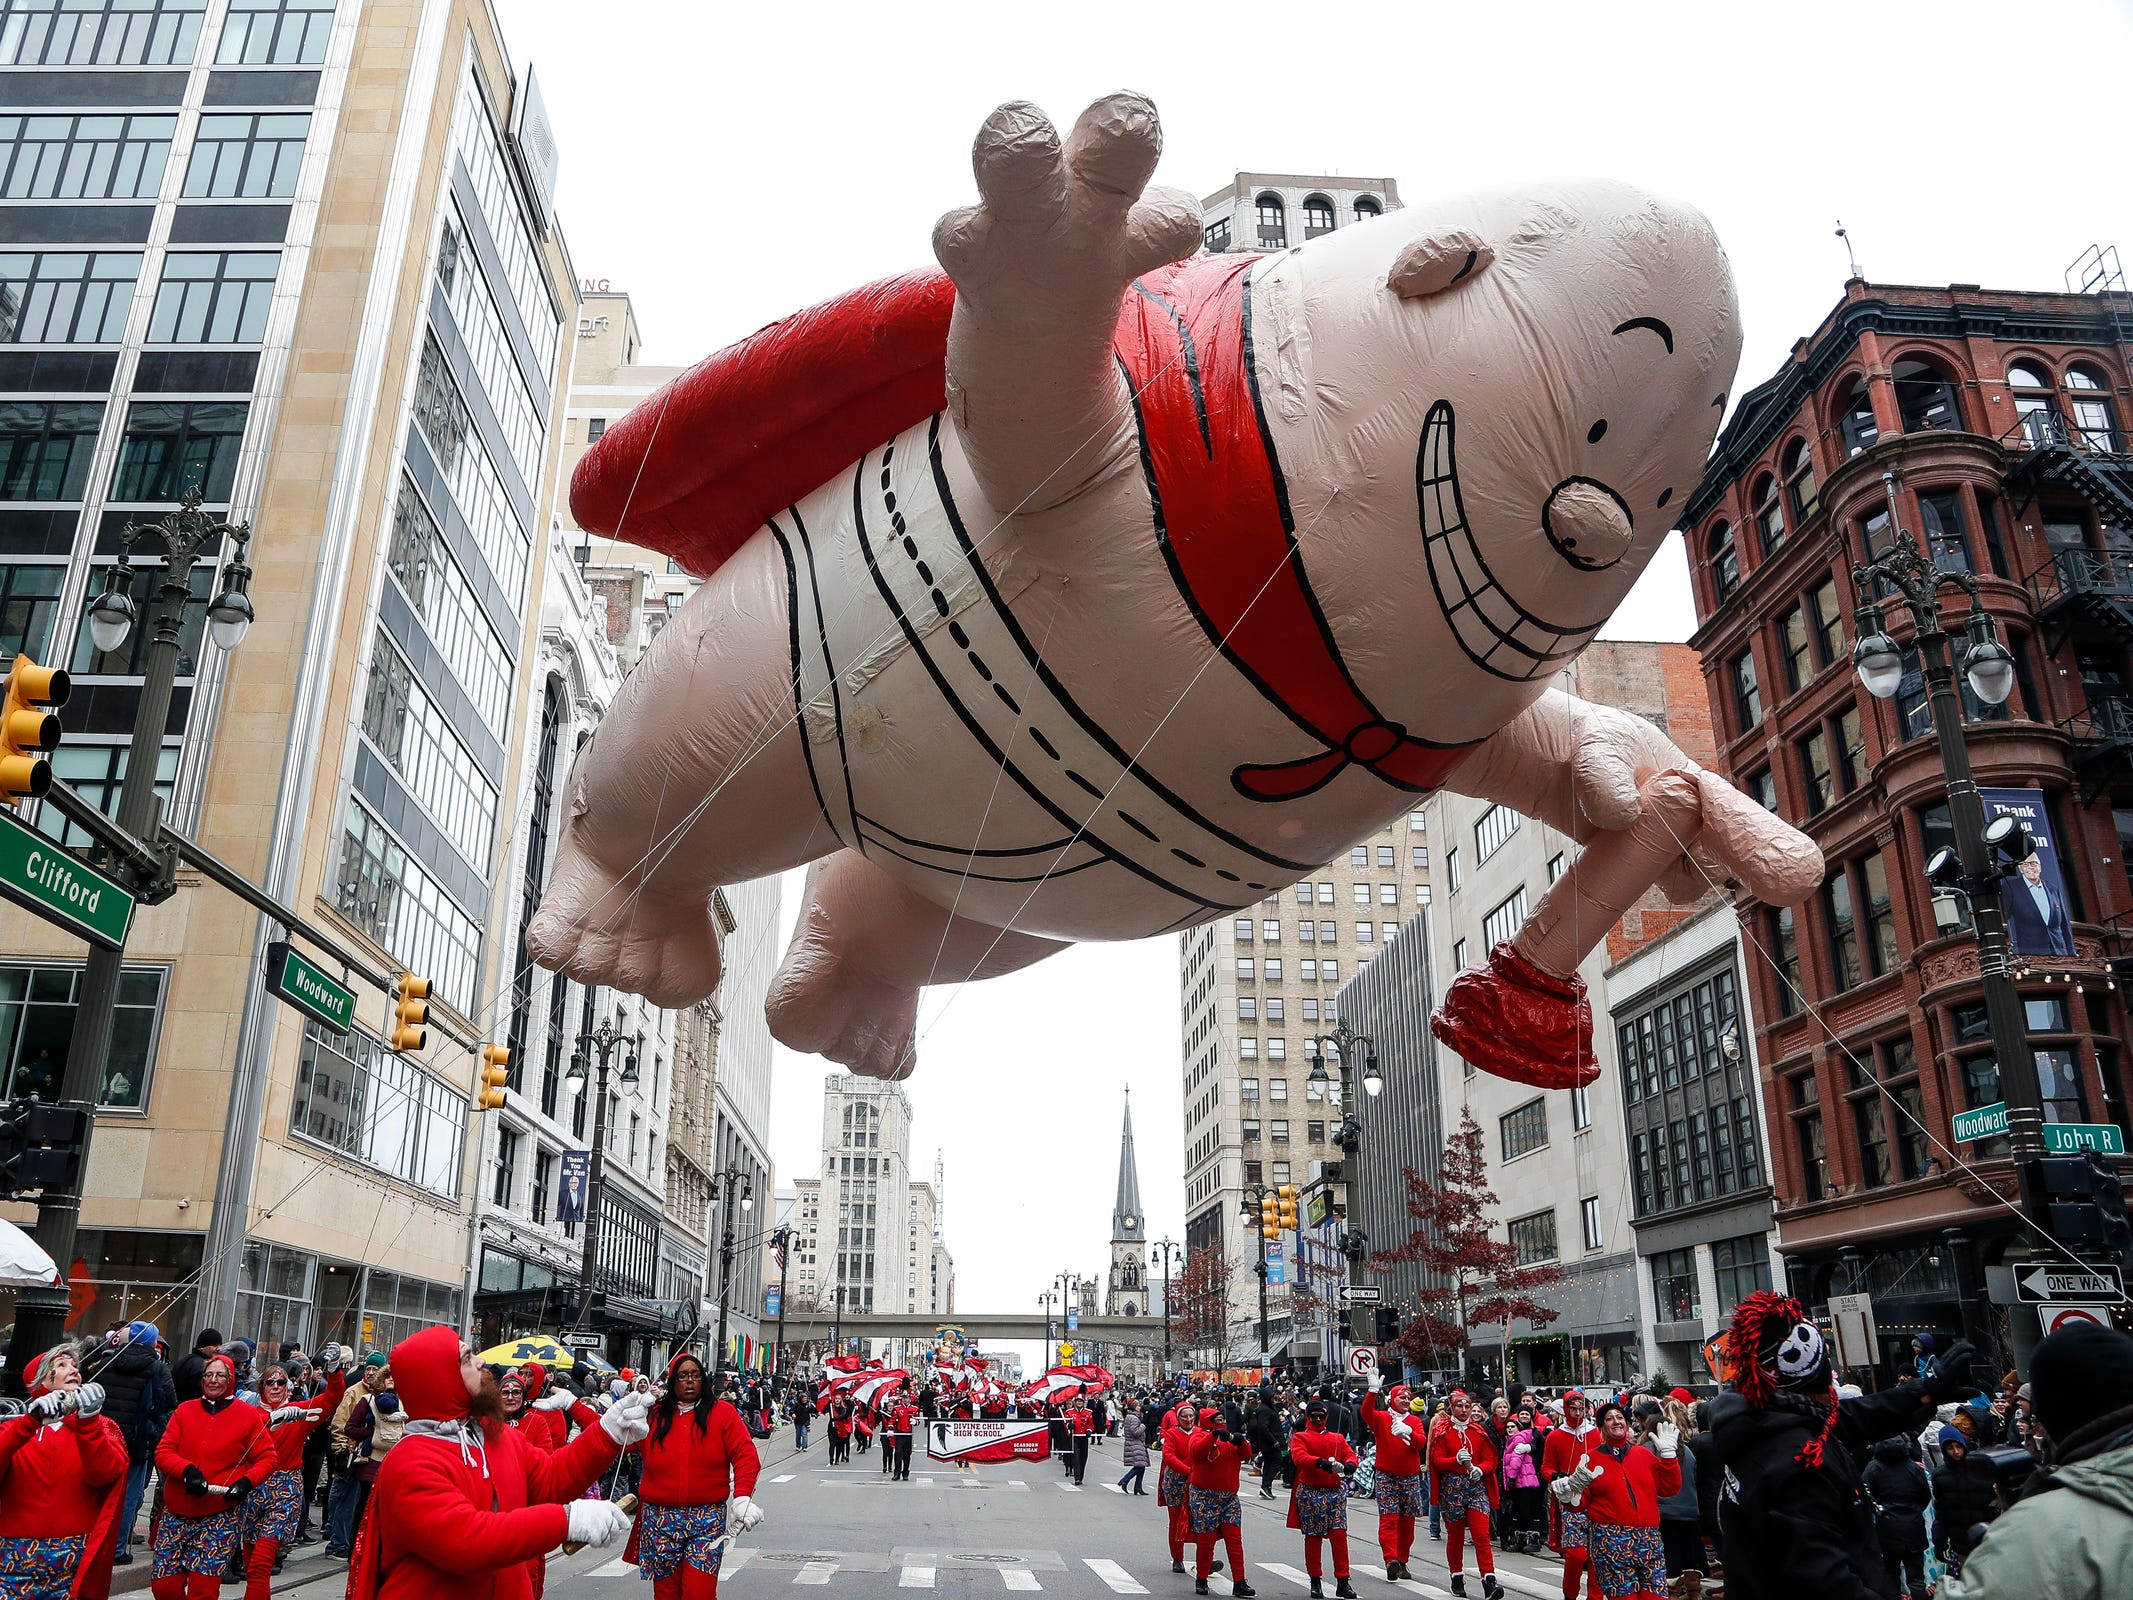 Captain Underpants float makes its way down Woodward Avenue during the 92nd America's Thanksgiving Day Parade in Detroit, Thursday, Nov. 22, 2018.